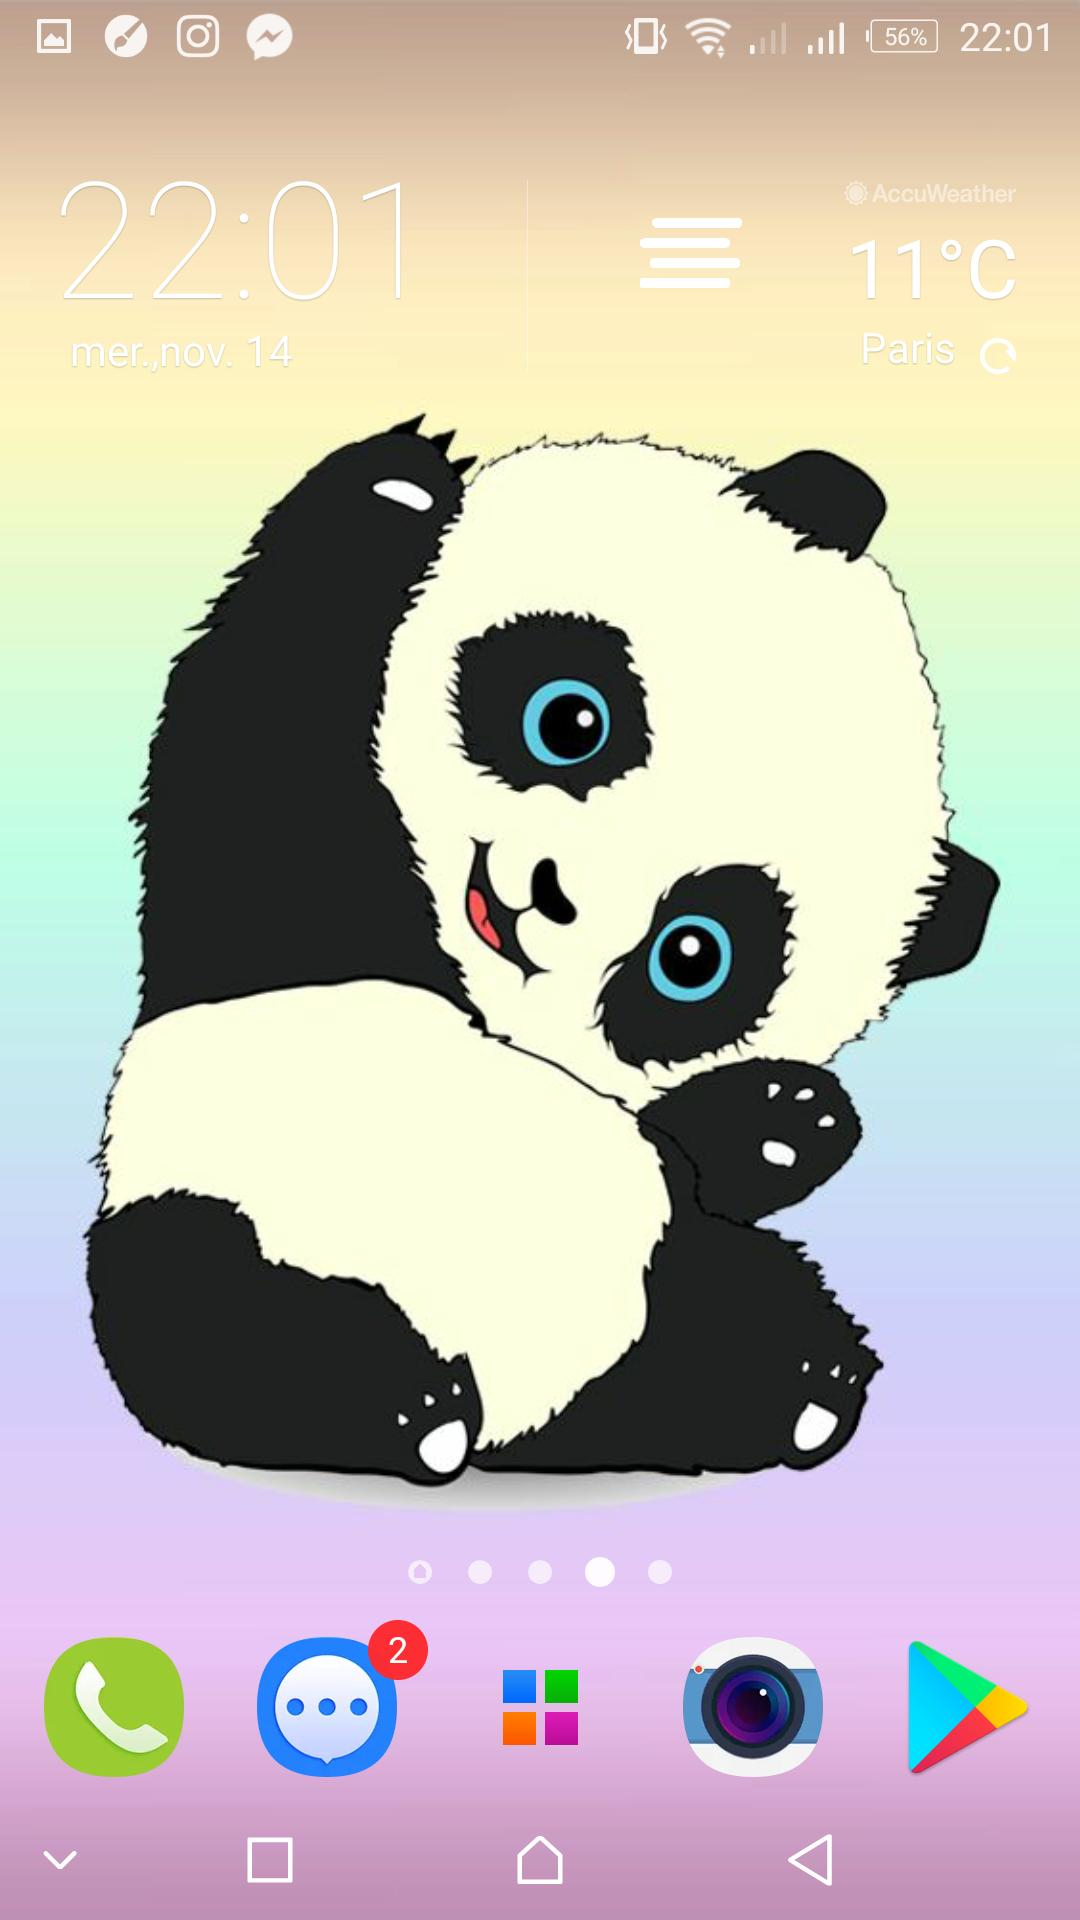 Wallpapers Panda Posted By Sarah Tremblay